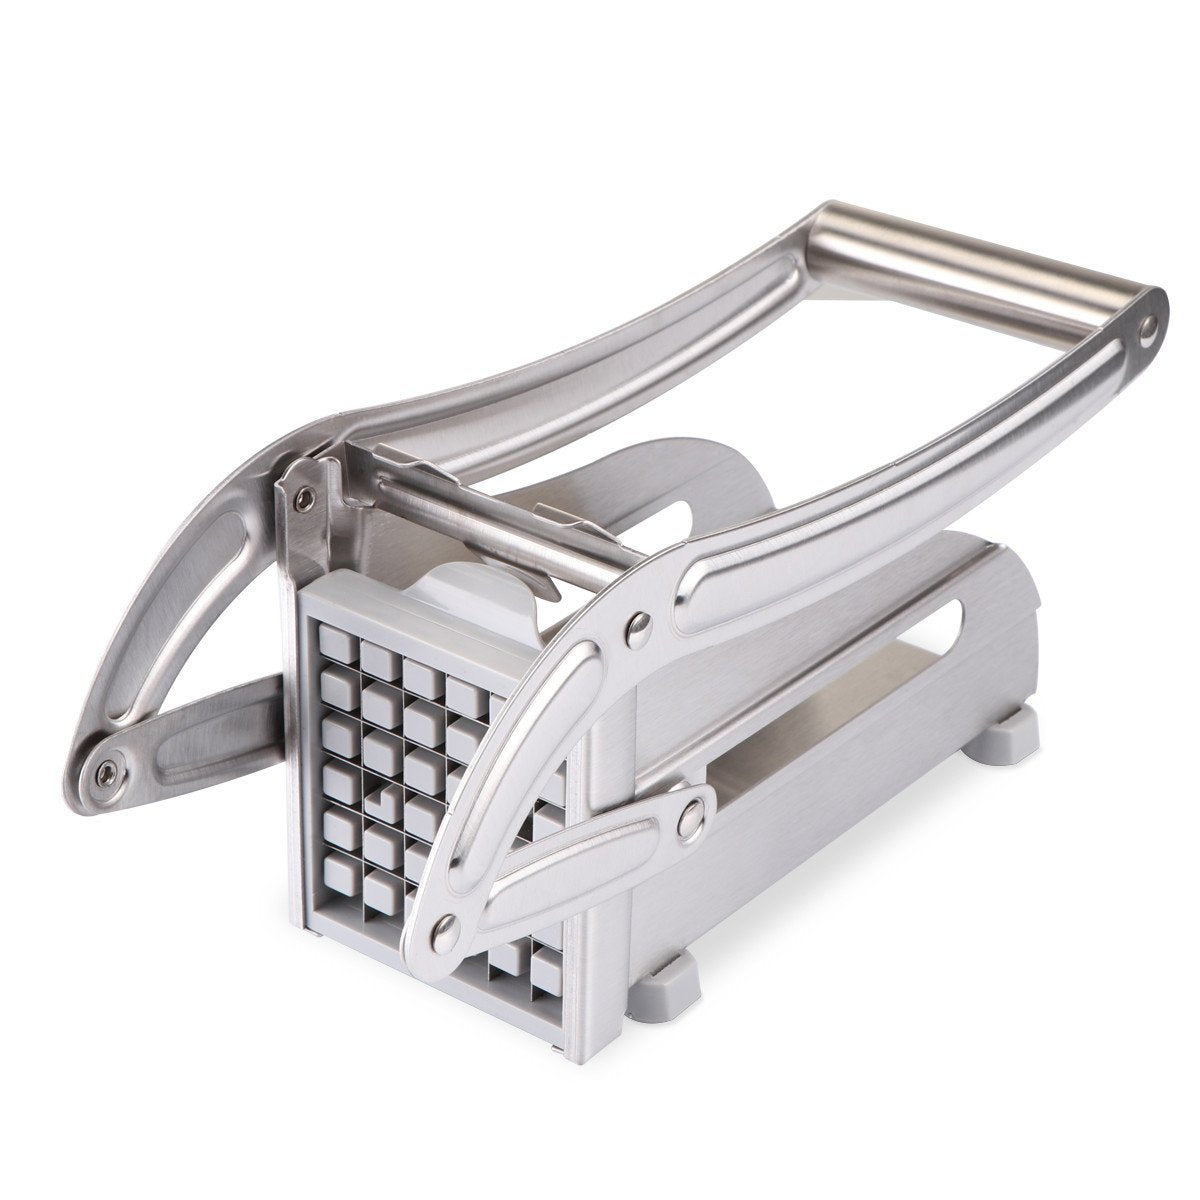 French Fry Potato Cutter and Slicer